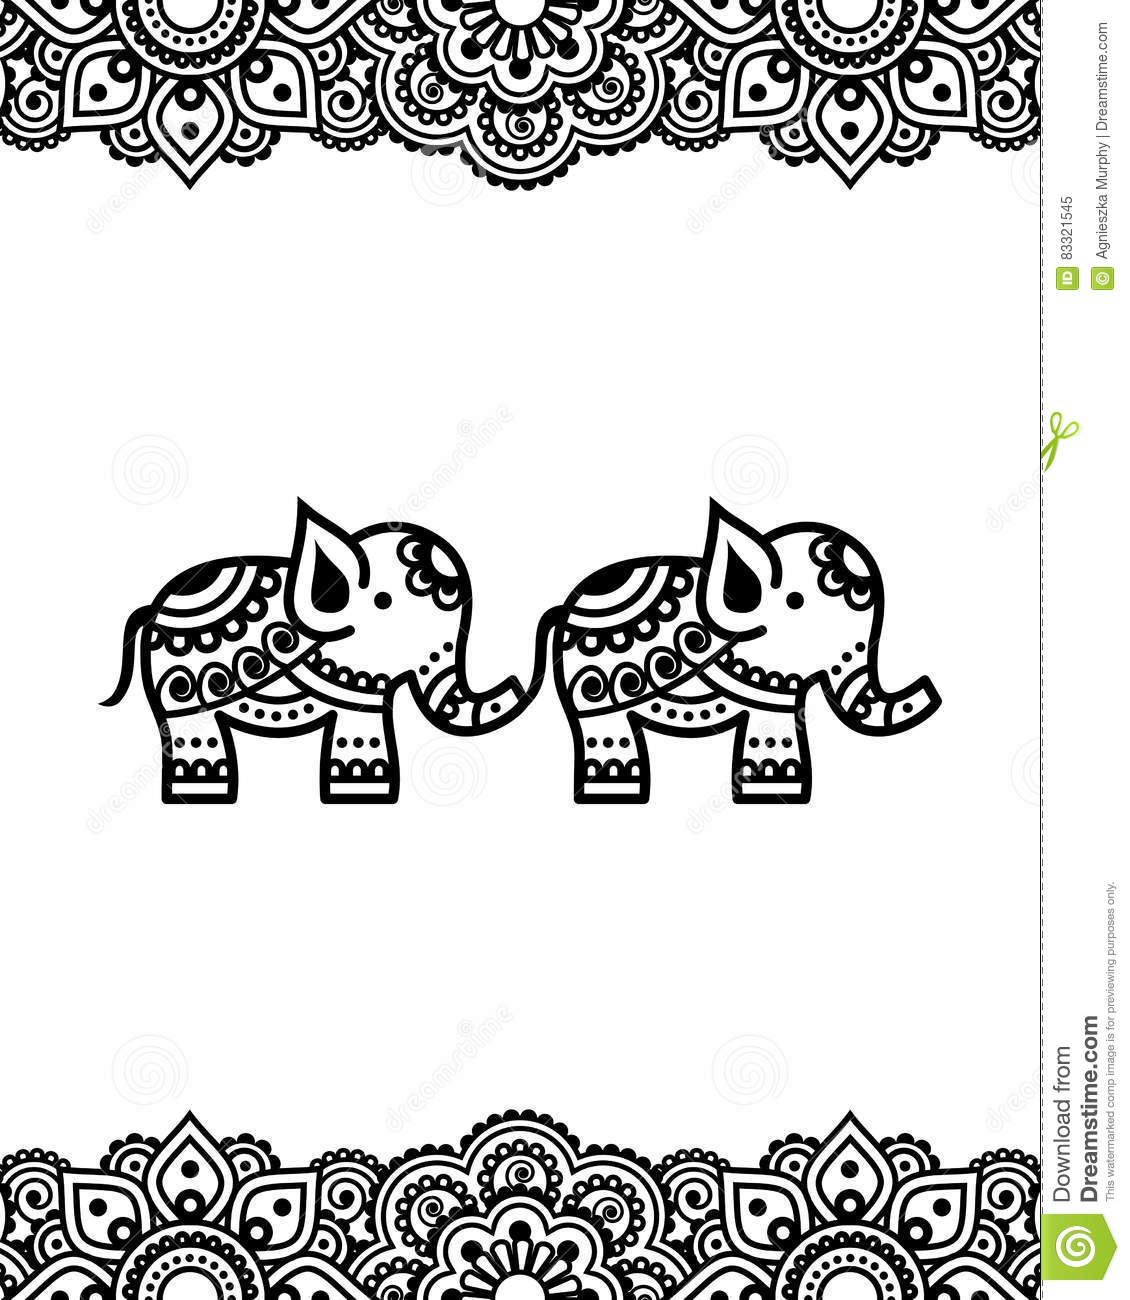 Download Mehndi Indian Henna Tattoo Design With Elephants Stock Illustration